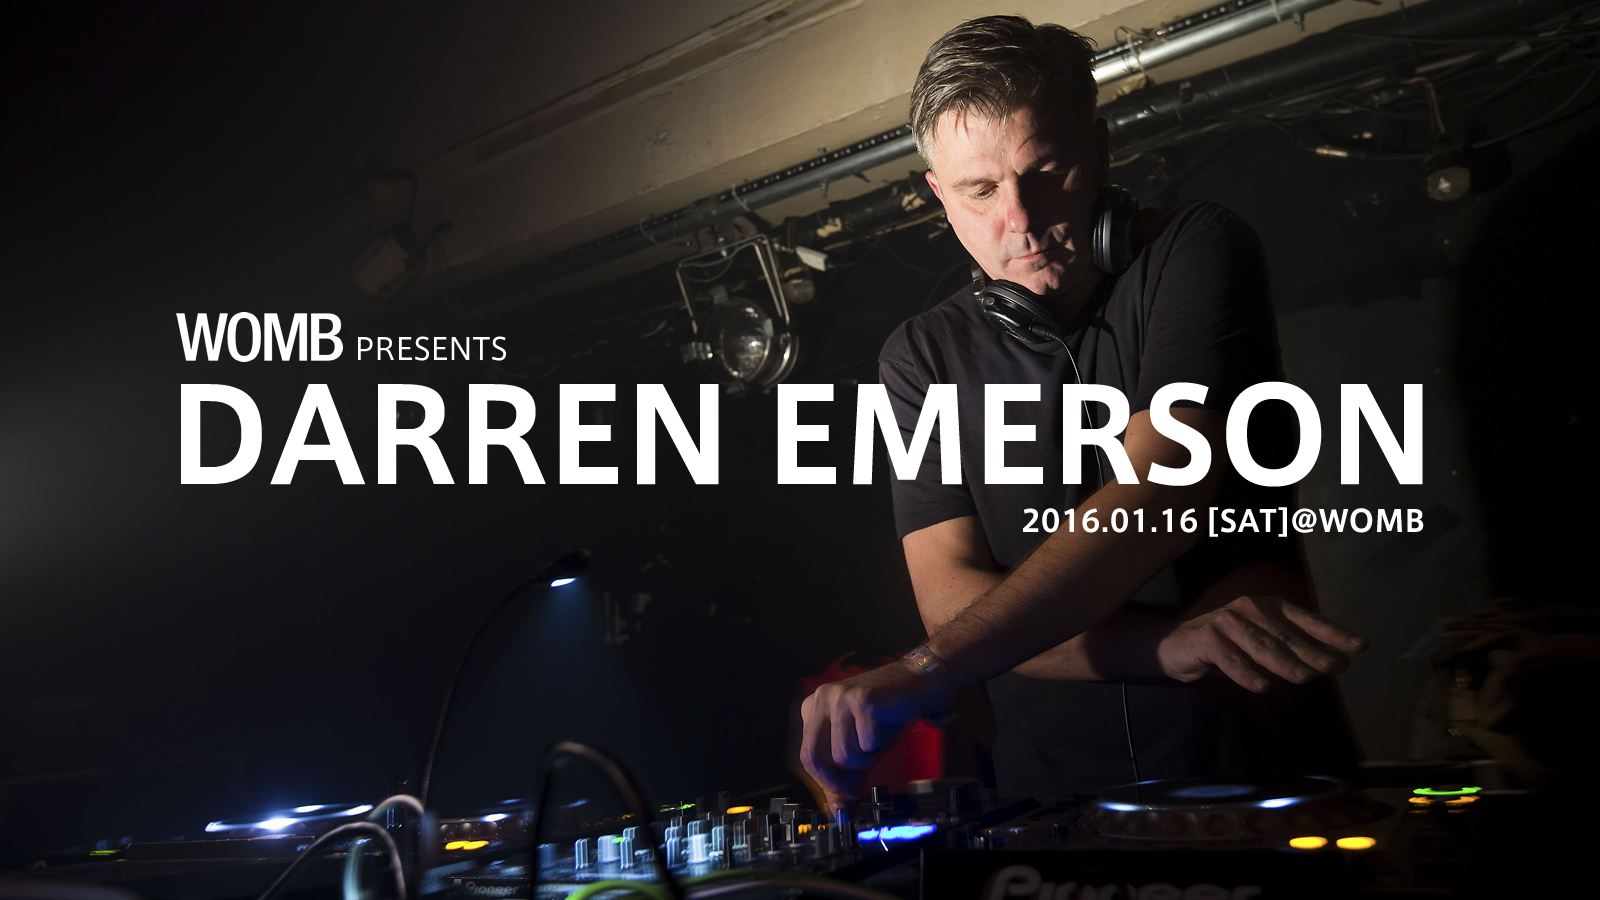 WOMB presents DARREN EMERSON